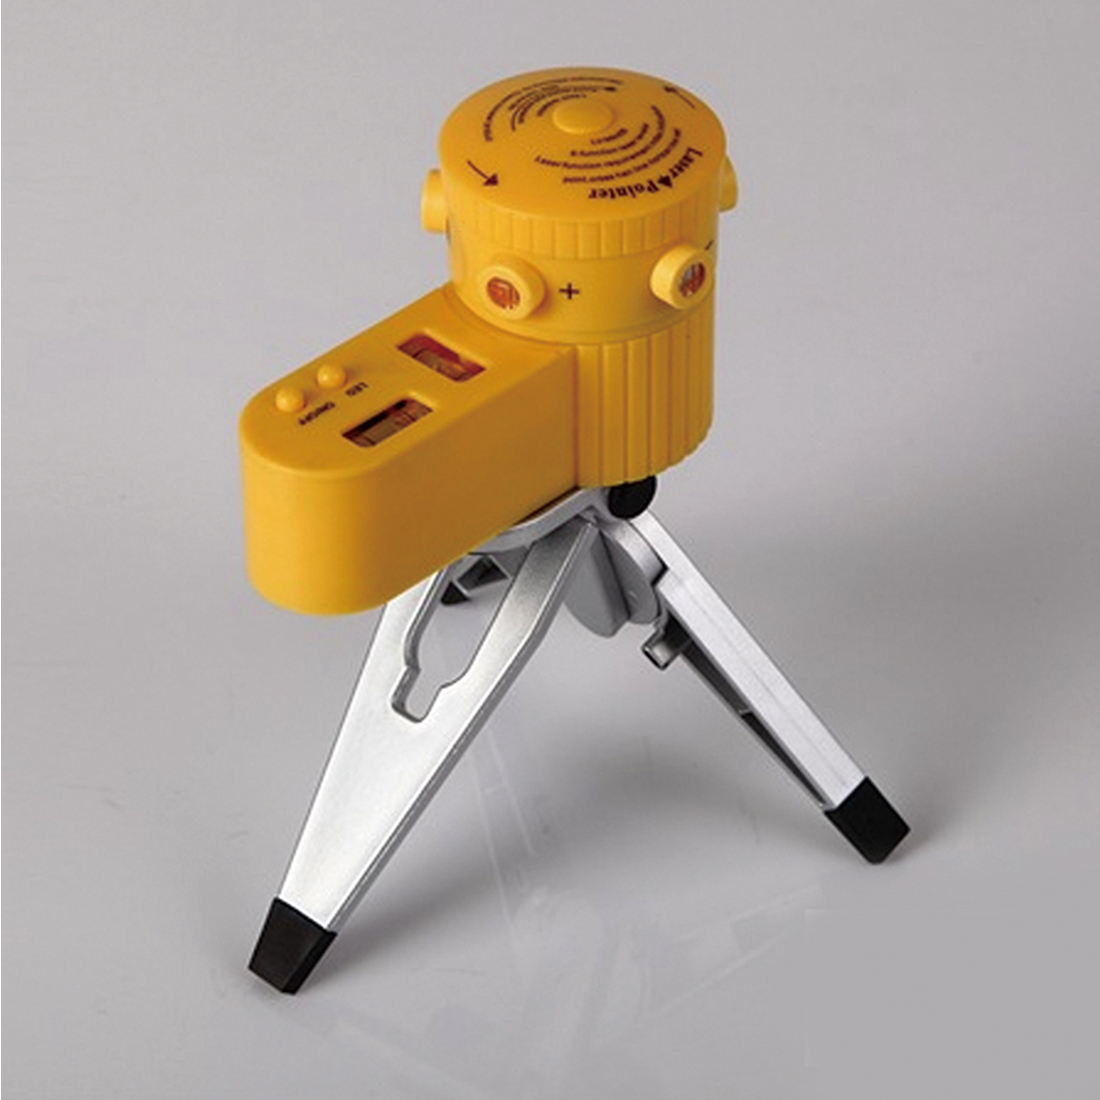 Worldwide Multifunction Cross Laser Level Leveler Vertical Horizontal Line Tool With Tripod free shipping highly visible line laser kapro 810 with vertical and horizontal vials